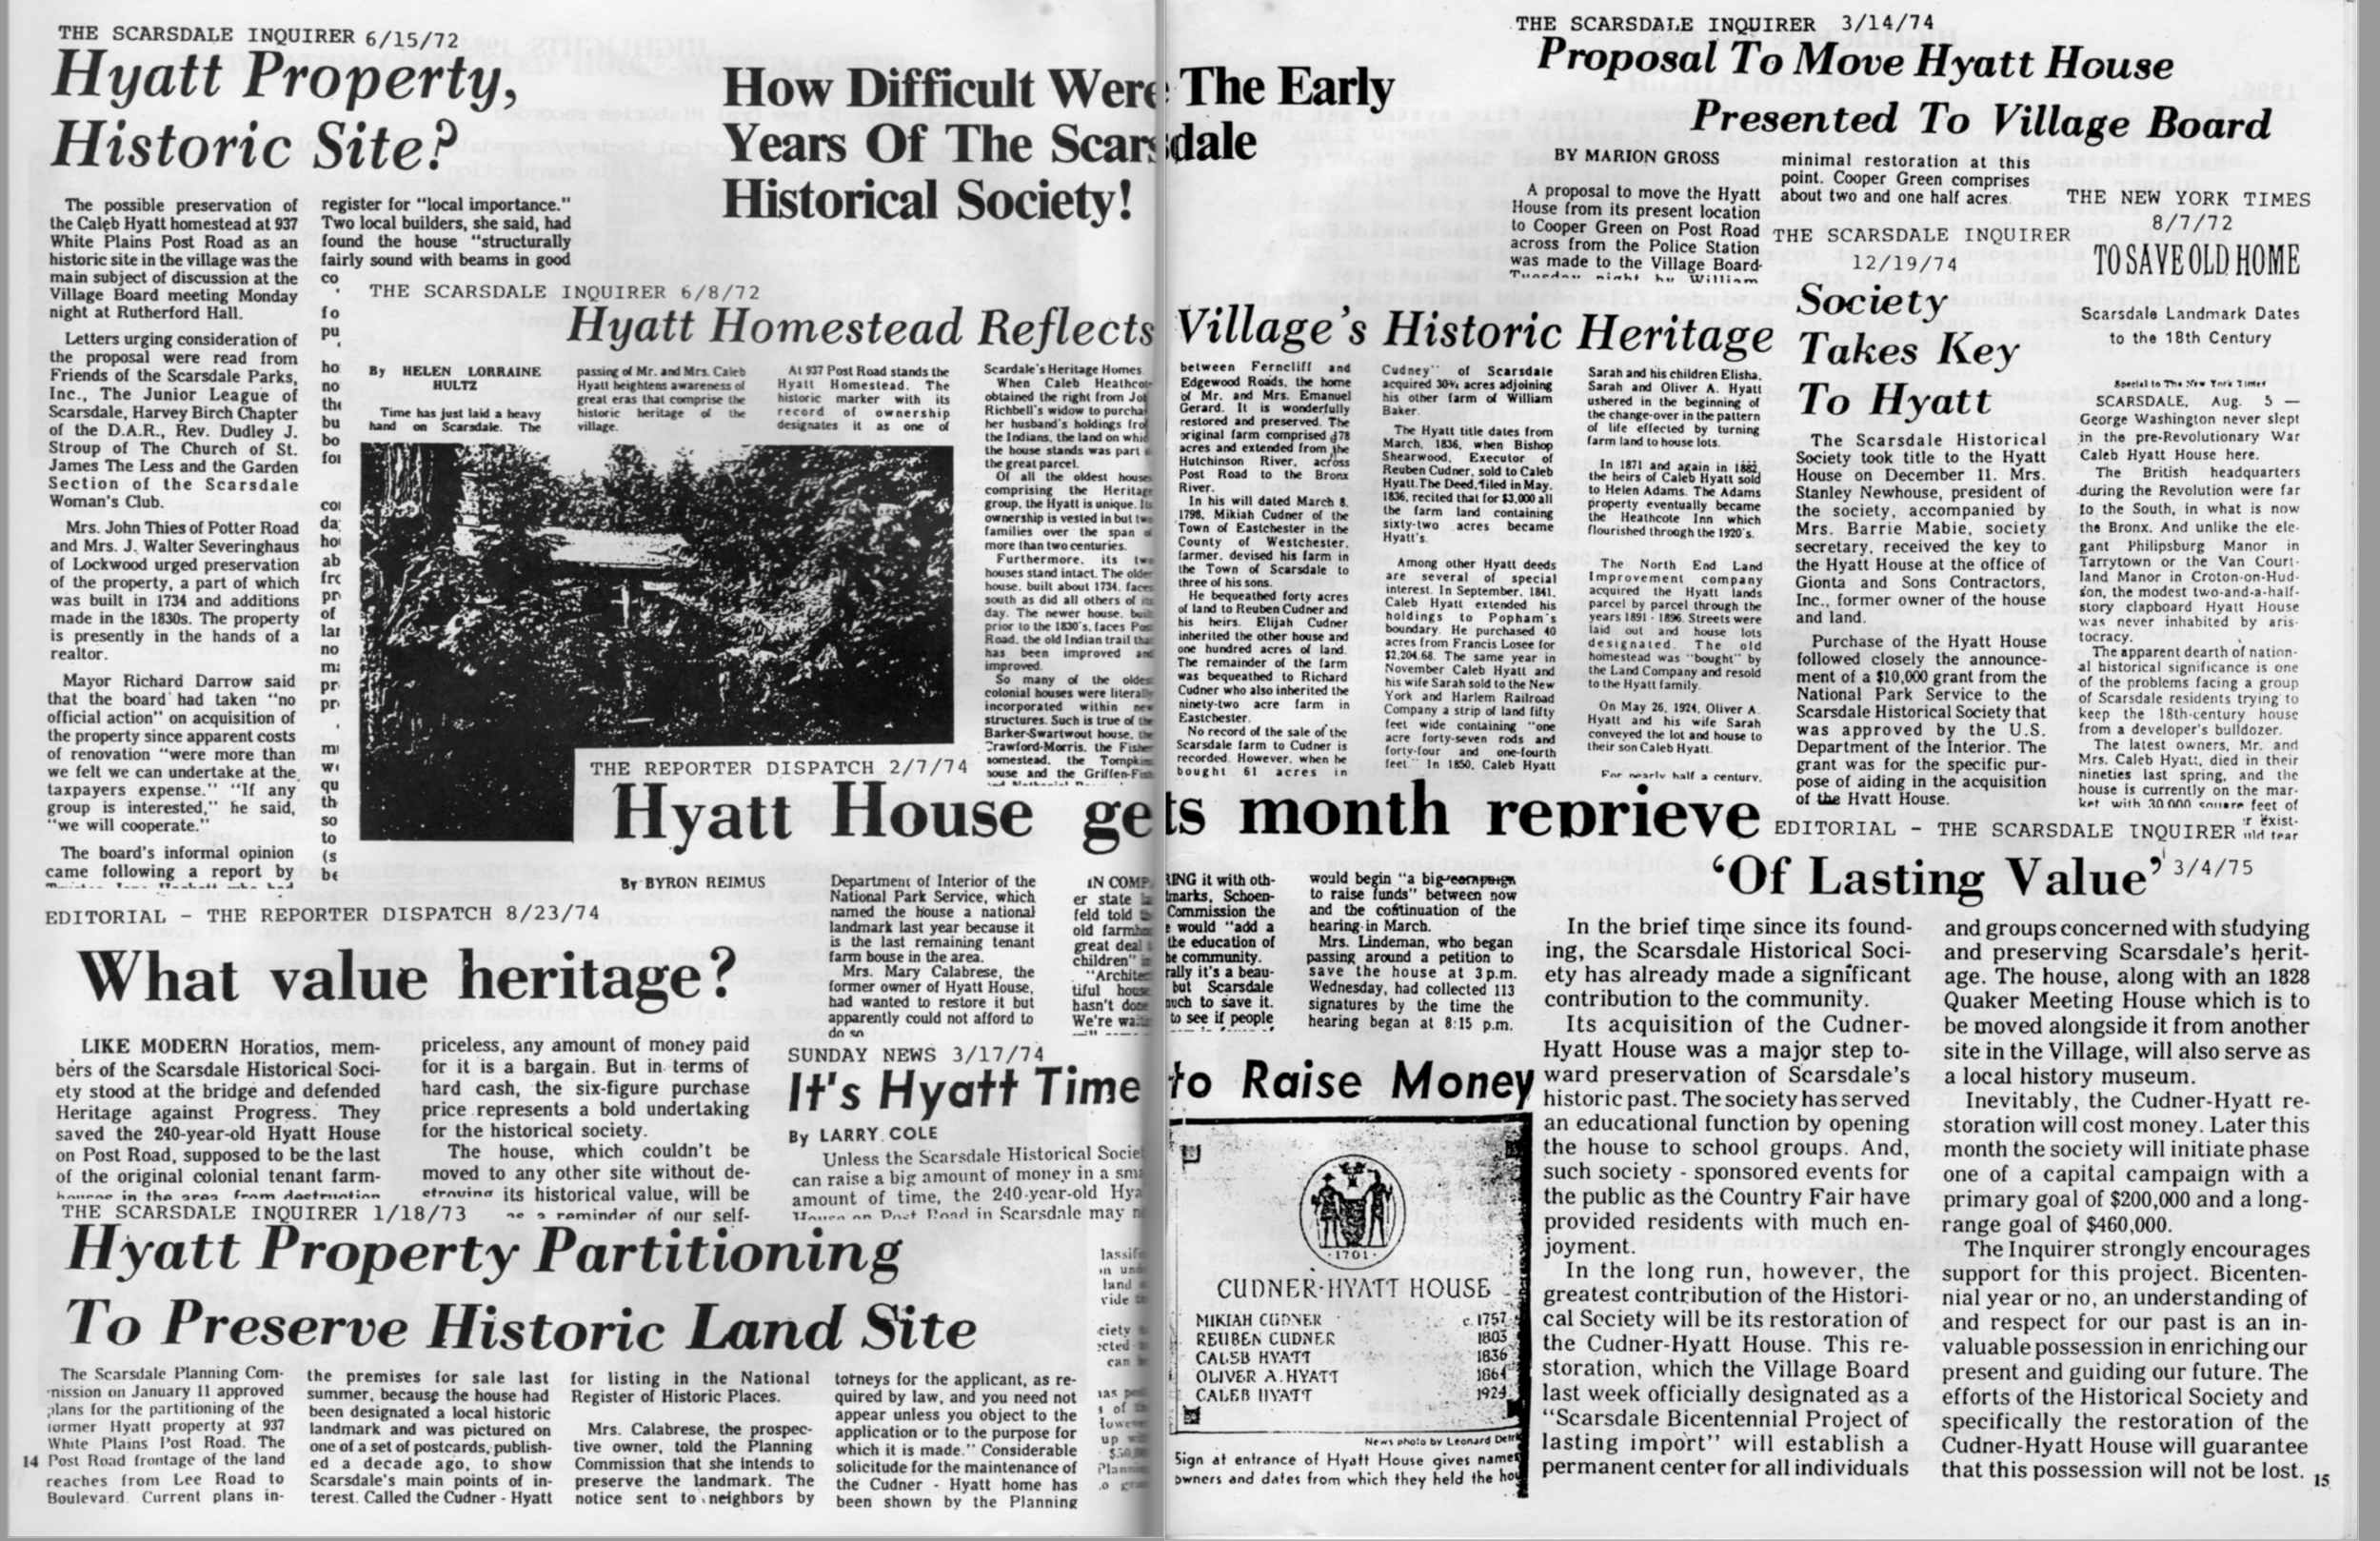 Clips from the many news articles about saving the Cudner-Hyatt House.(From  Celebrating 25 Years of Progress 1974 to 1999,  Scarsdale Historical Society booklet)